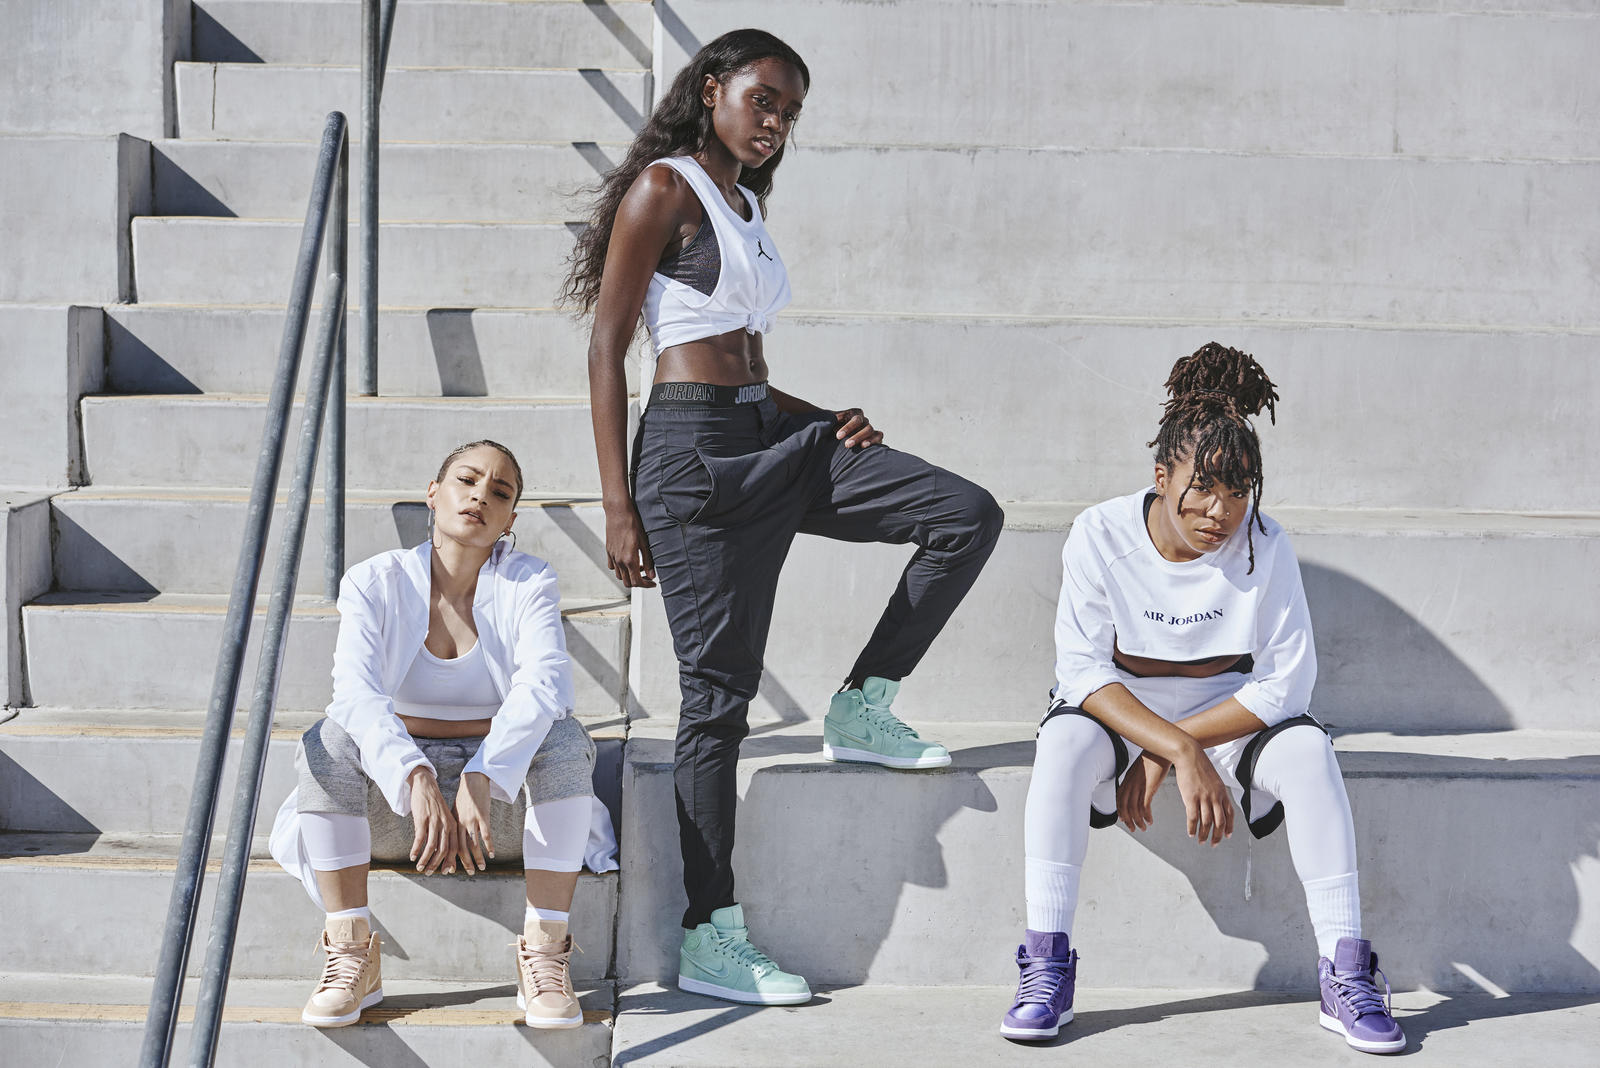 08e101b63850 Jordan Brand Reveals Spring 2018 Women s Collection - Nike News